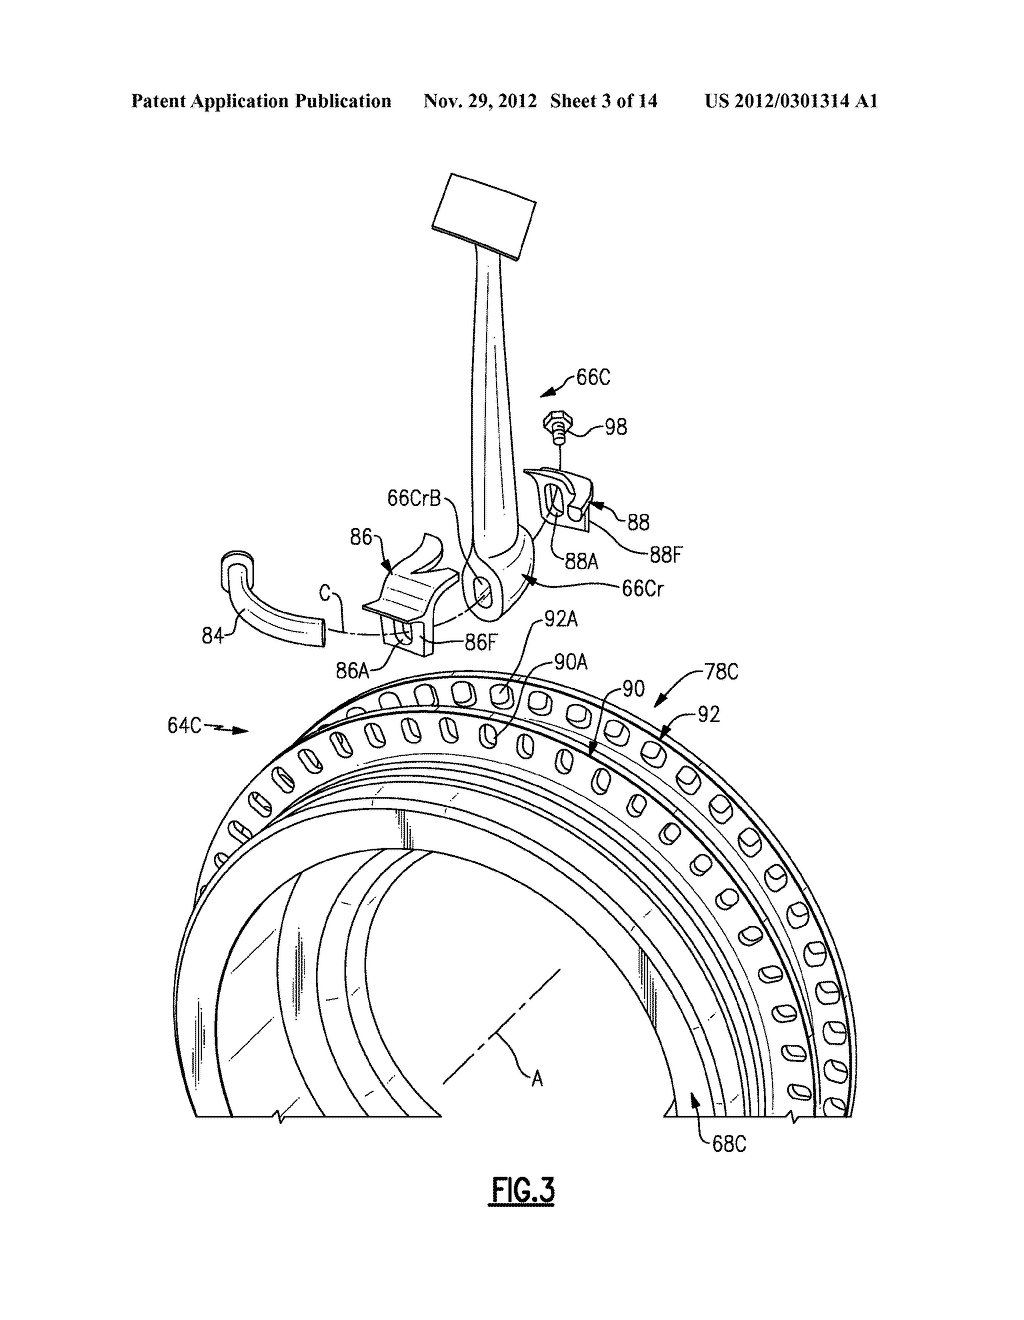 Hybrid Rotor Disk Assembly With A Ceramic Matrix Composite Airfoil Engine Diagram For Gas Turbine Schematic And Image 04